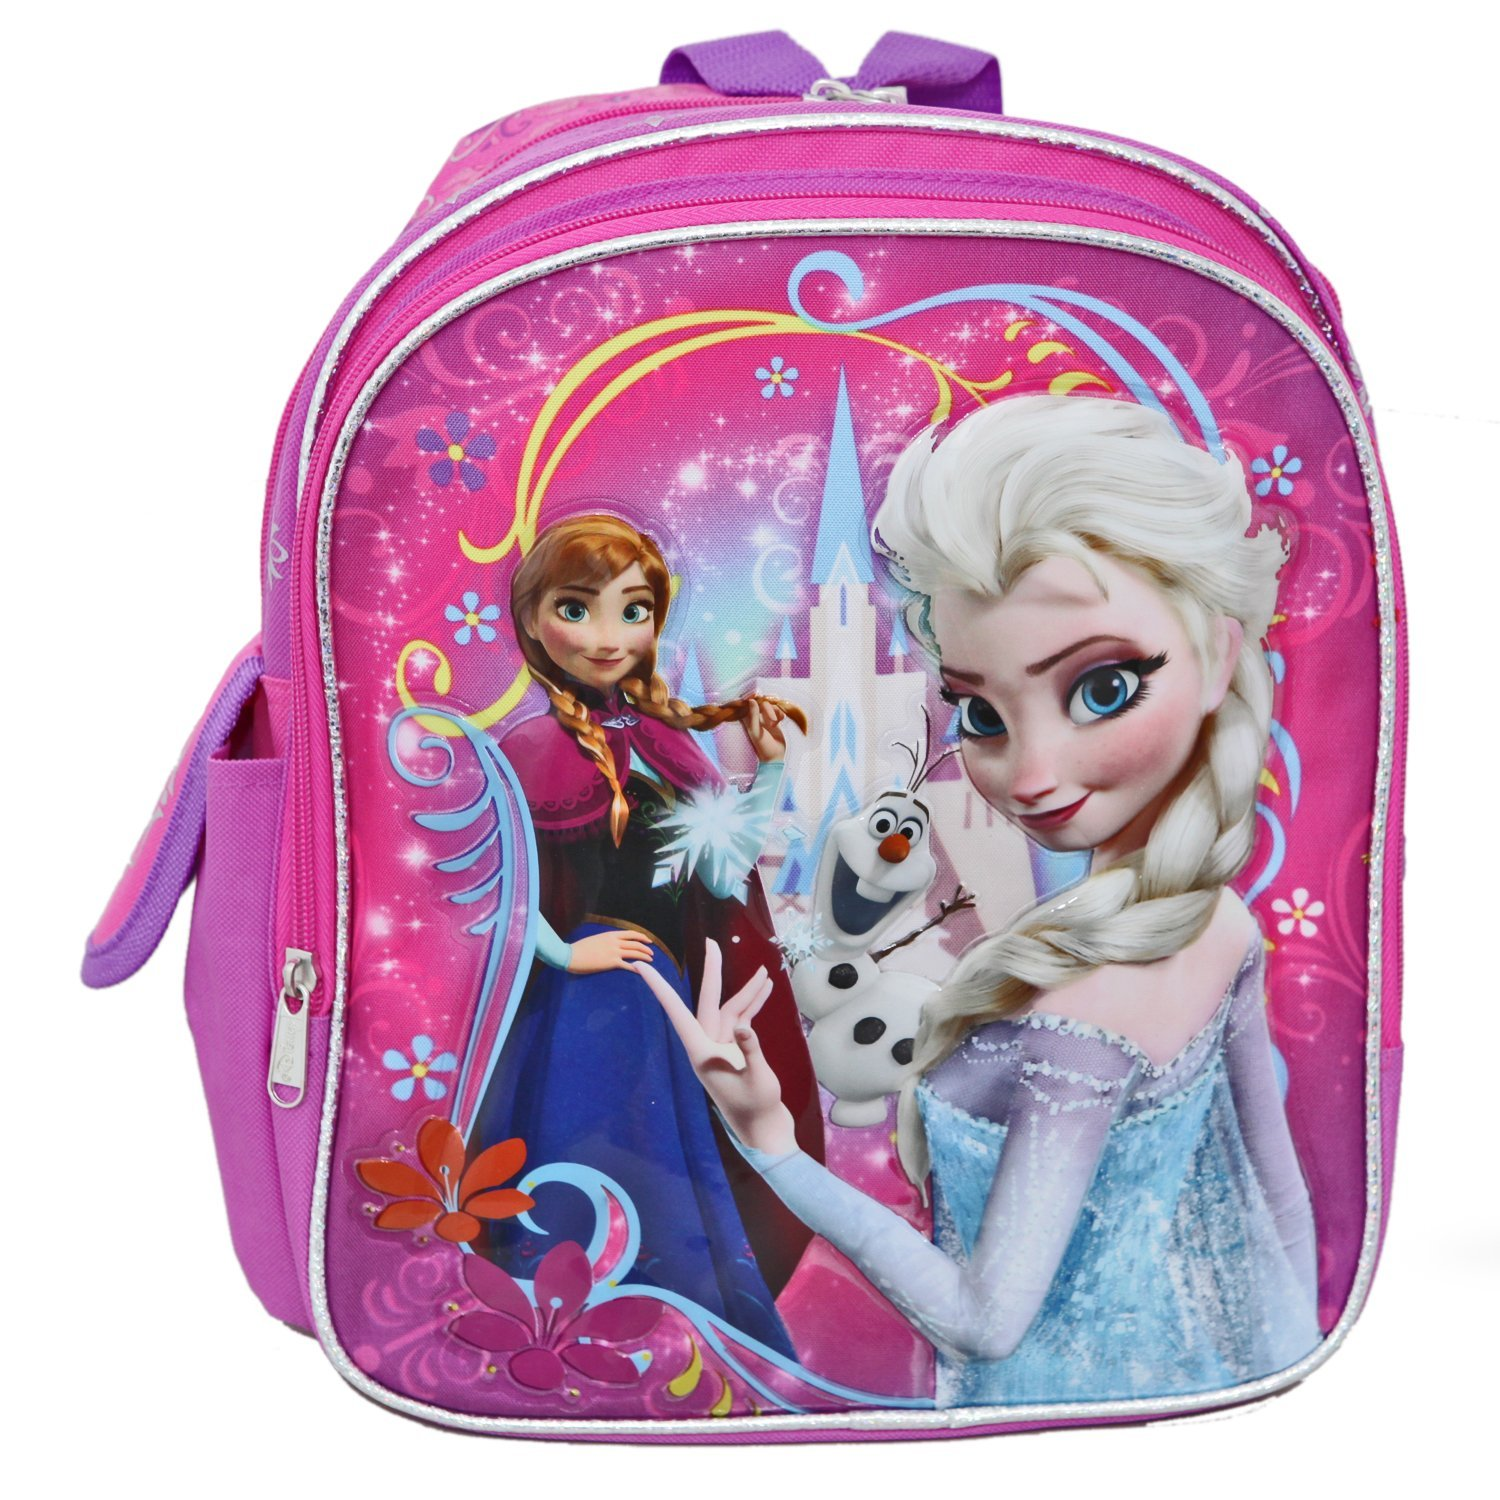 Small Backpack - Disney - Frozen Princess Elsa Anna Olaf School Bag New 639723